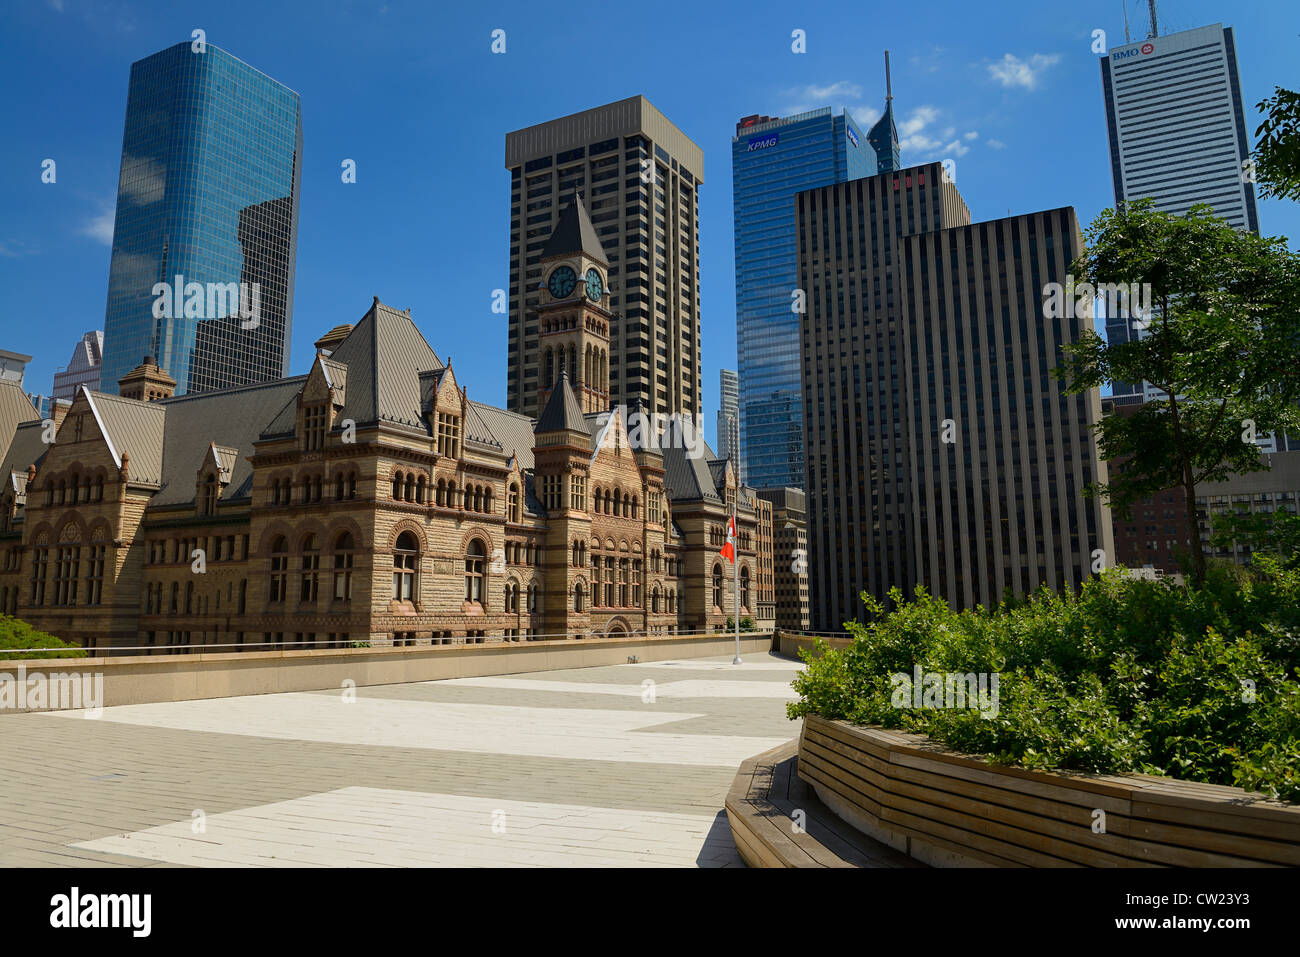 Rooftop garden and patio at Toronto City Hall with old city hall and highrise towers - Stock Image